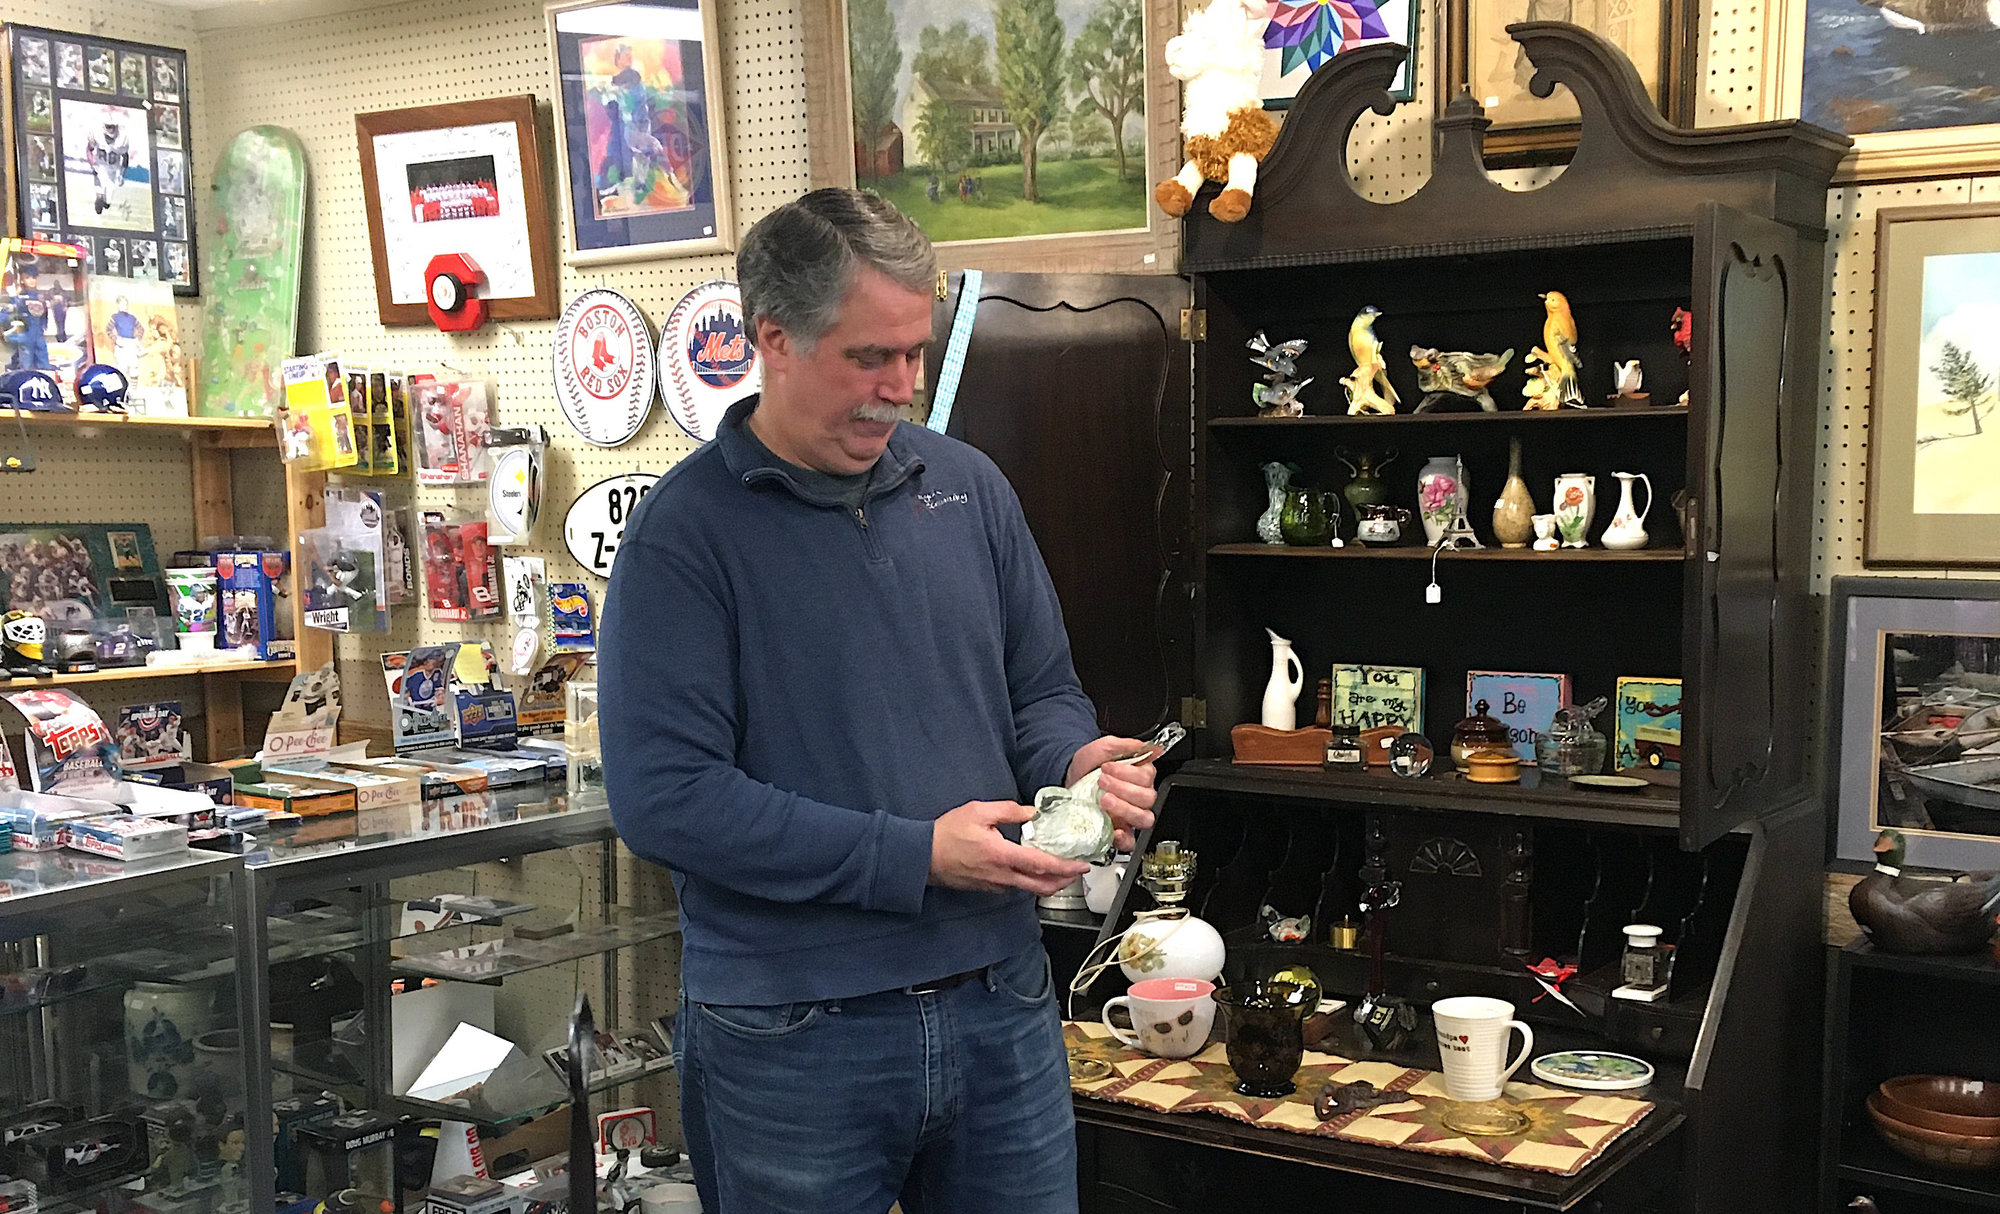 Jay Engles with a small portion of the widely varied stock of Lansing's The People's Market. Jay and his co-owner and spouse Carol started the shop 10 years ago to sell products from their alpaca farm. The market has grown to 40 local venders since.